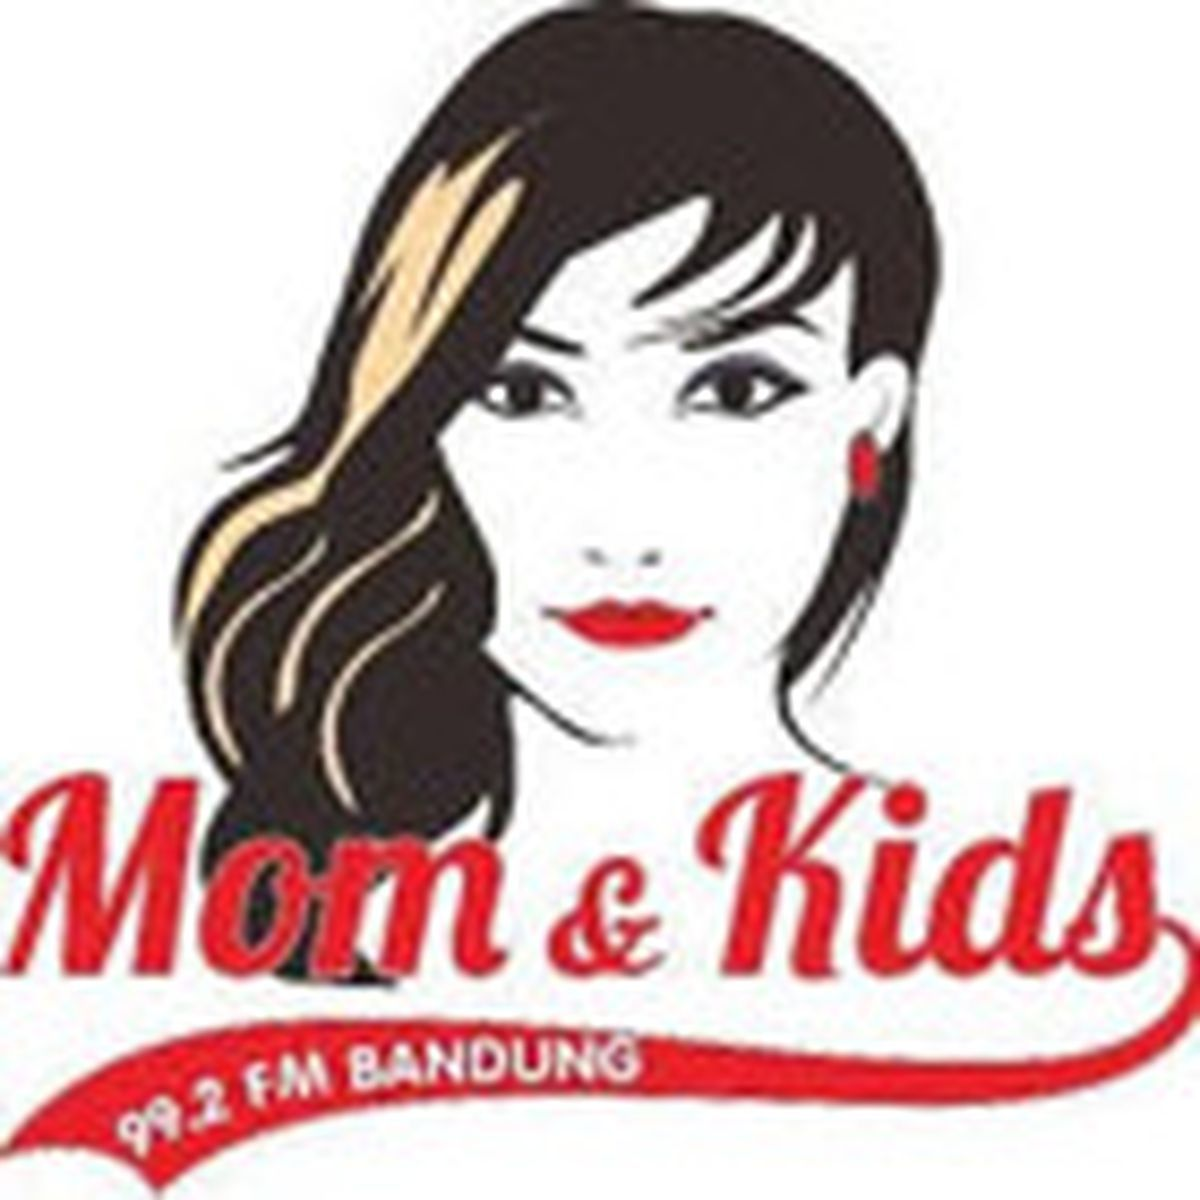 Mom and Kids Radio